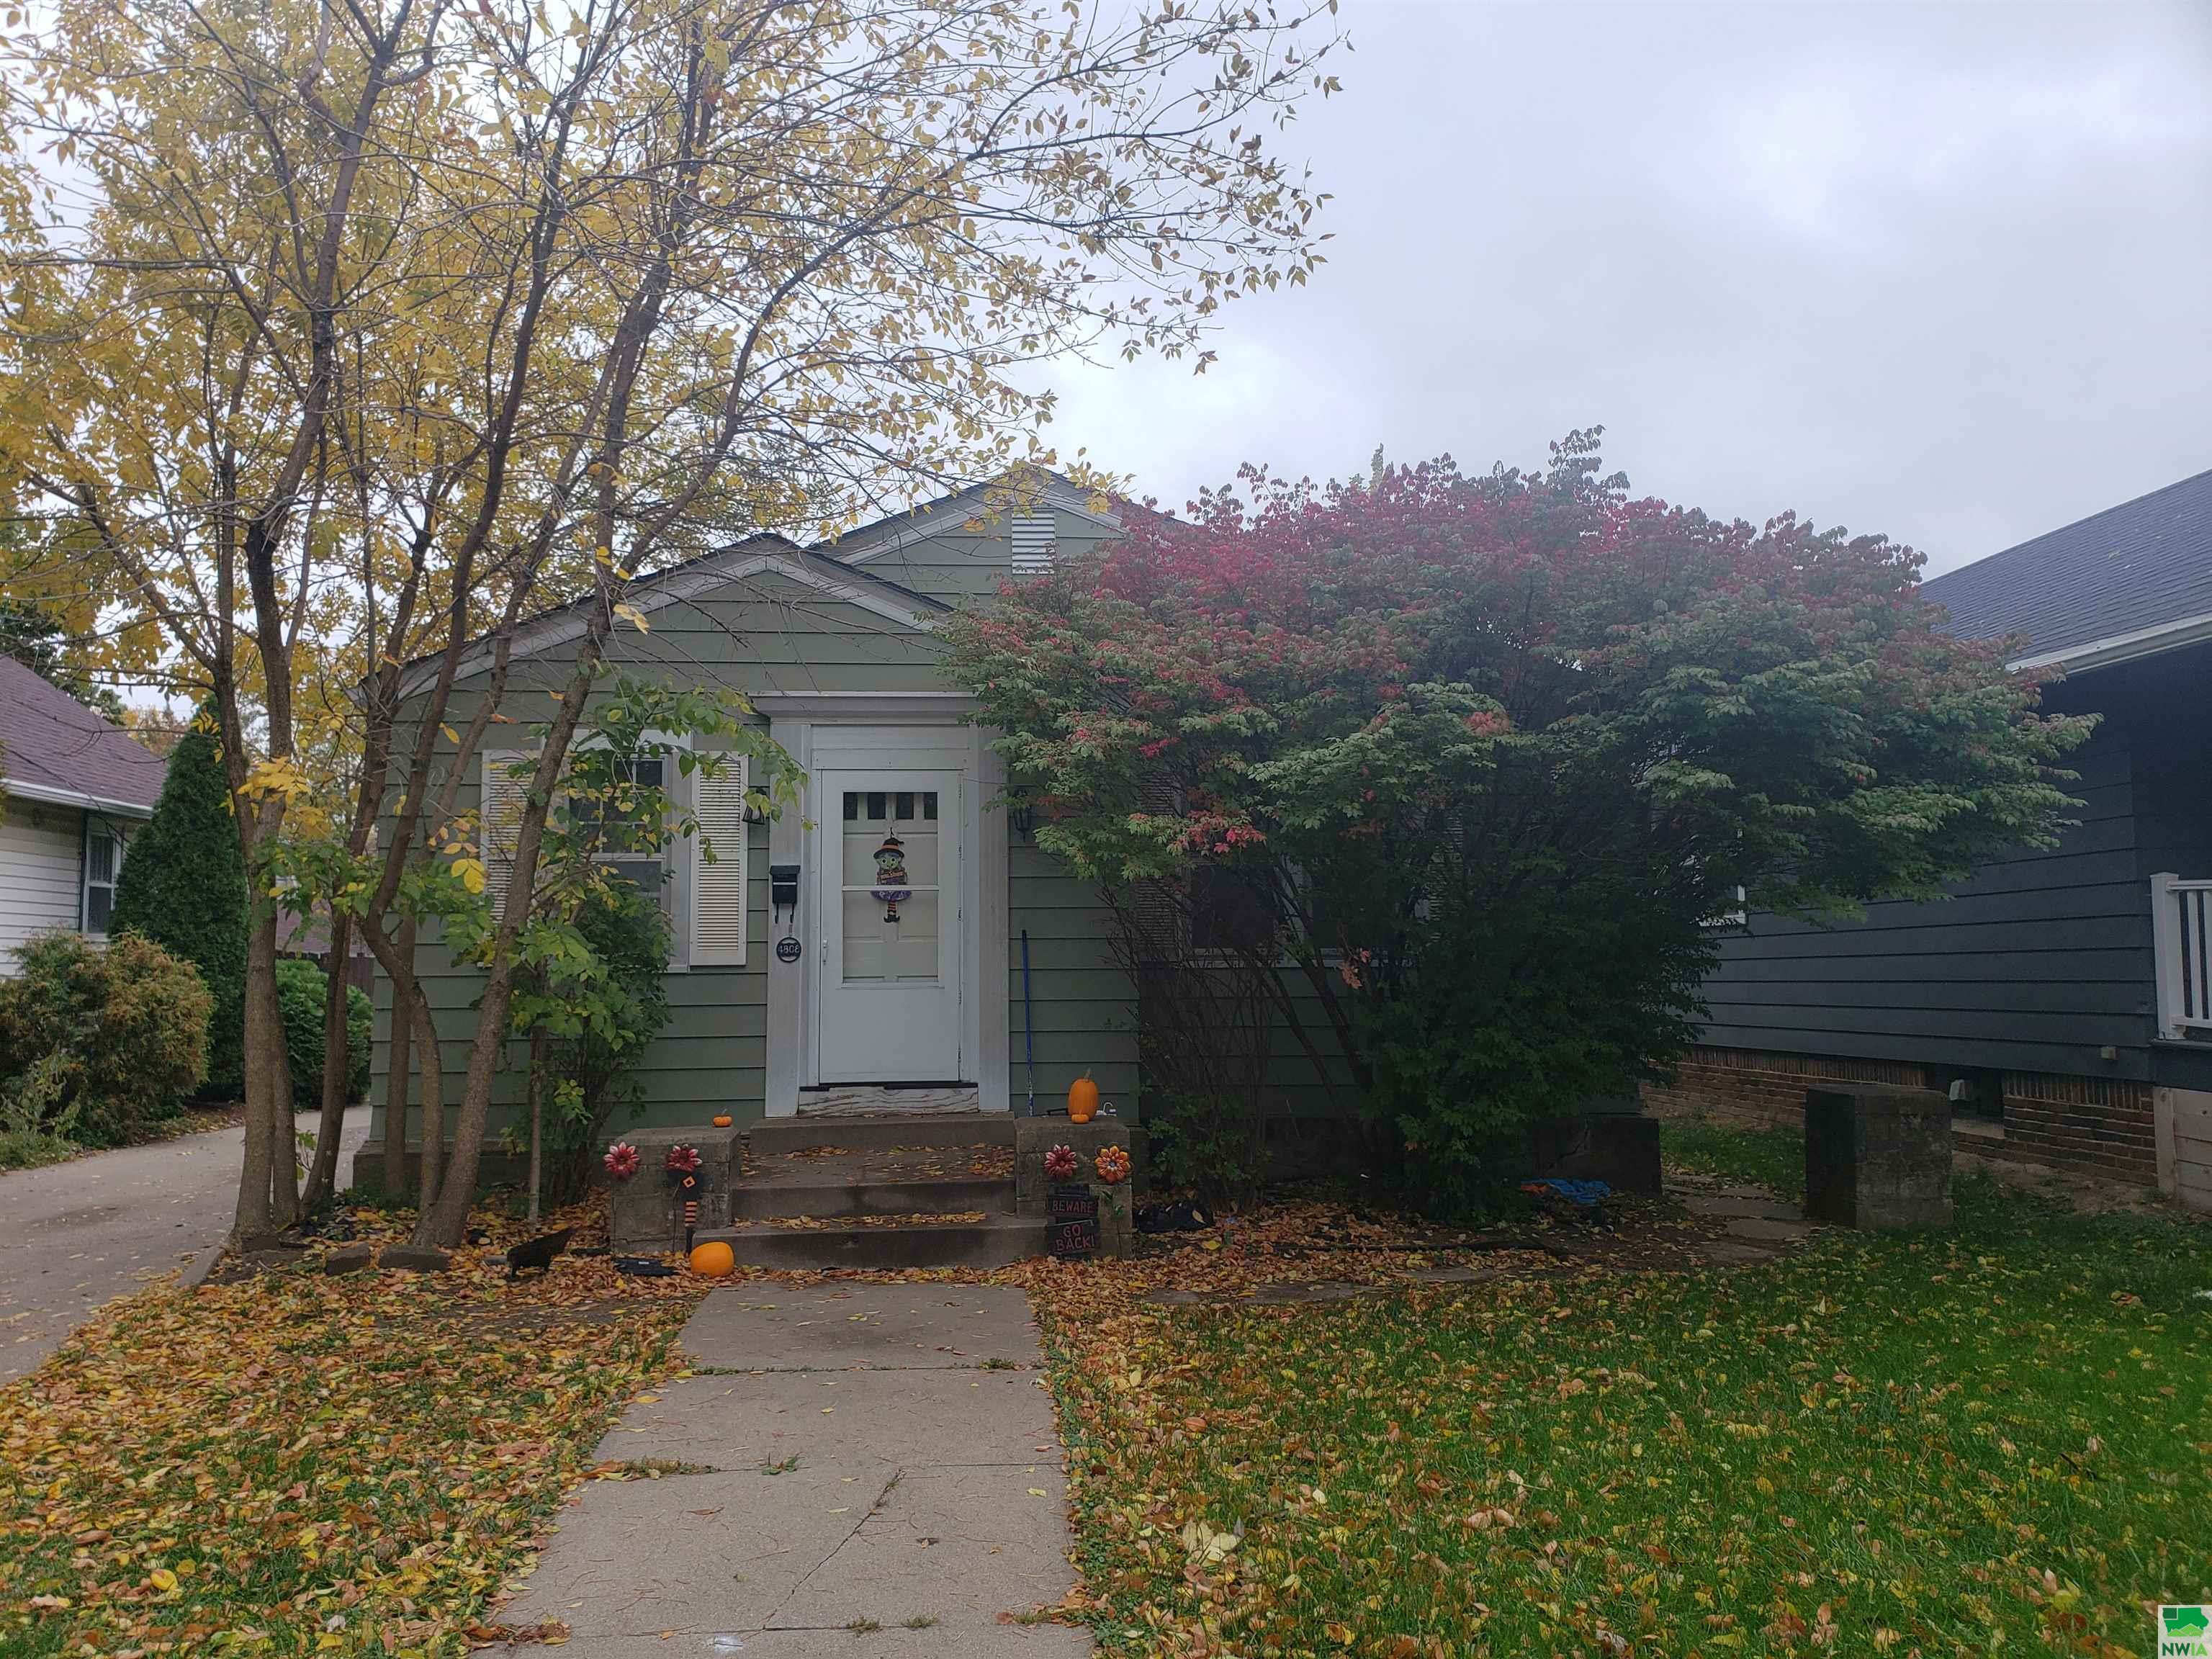 4808 Morningside Ave, Sioux City, Iowa 51106